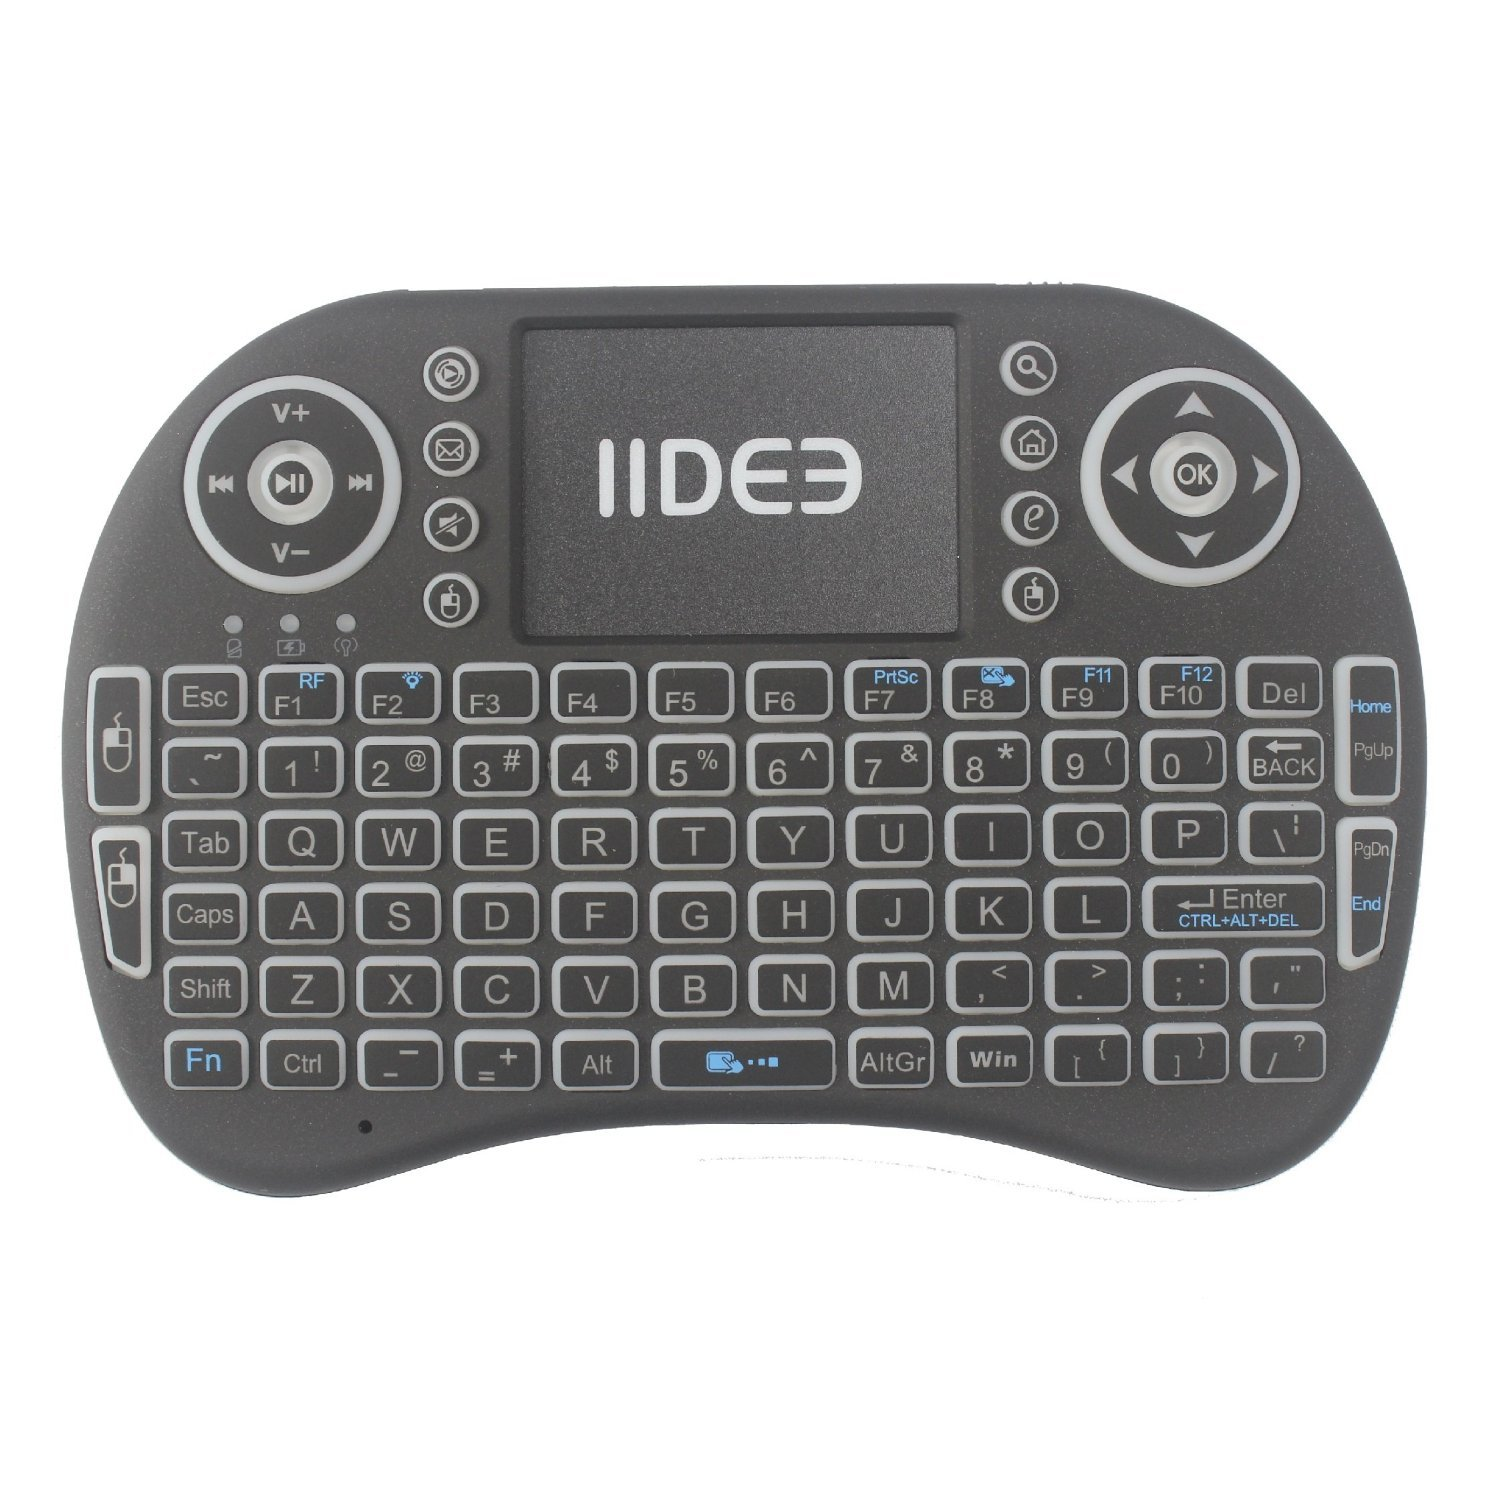 Rii i8 (10038-ID) Mini 2.4GHz Wireless Touchpad Keyboard with Mouse, Black by Rii (Image #5)